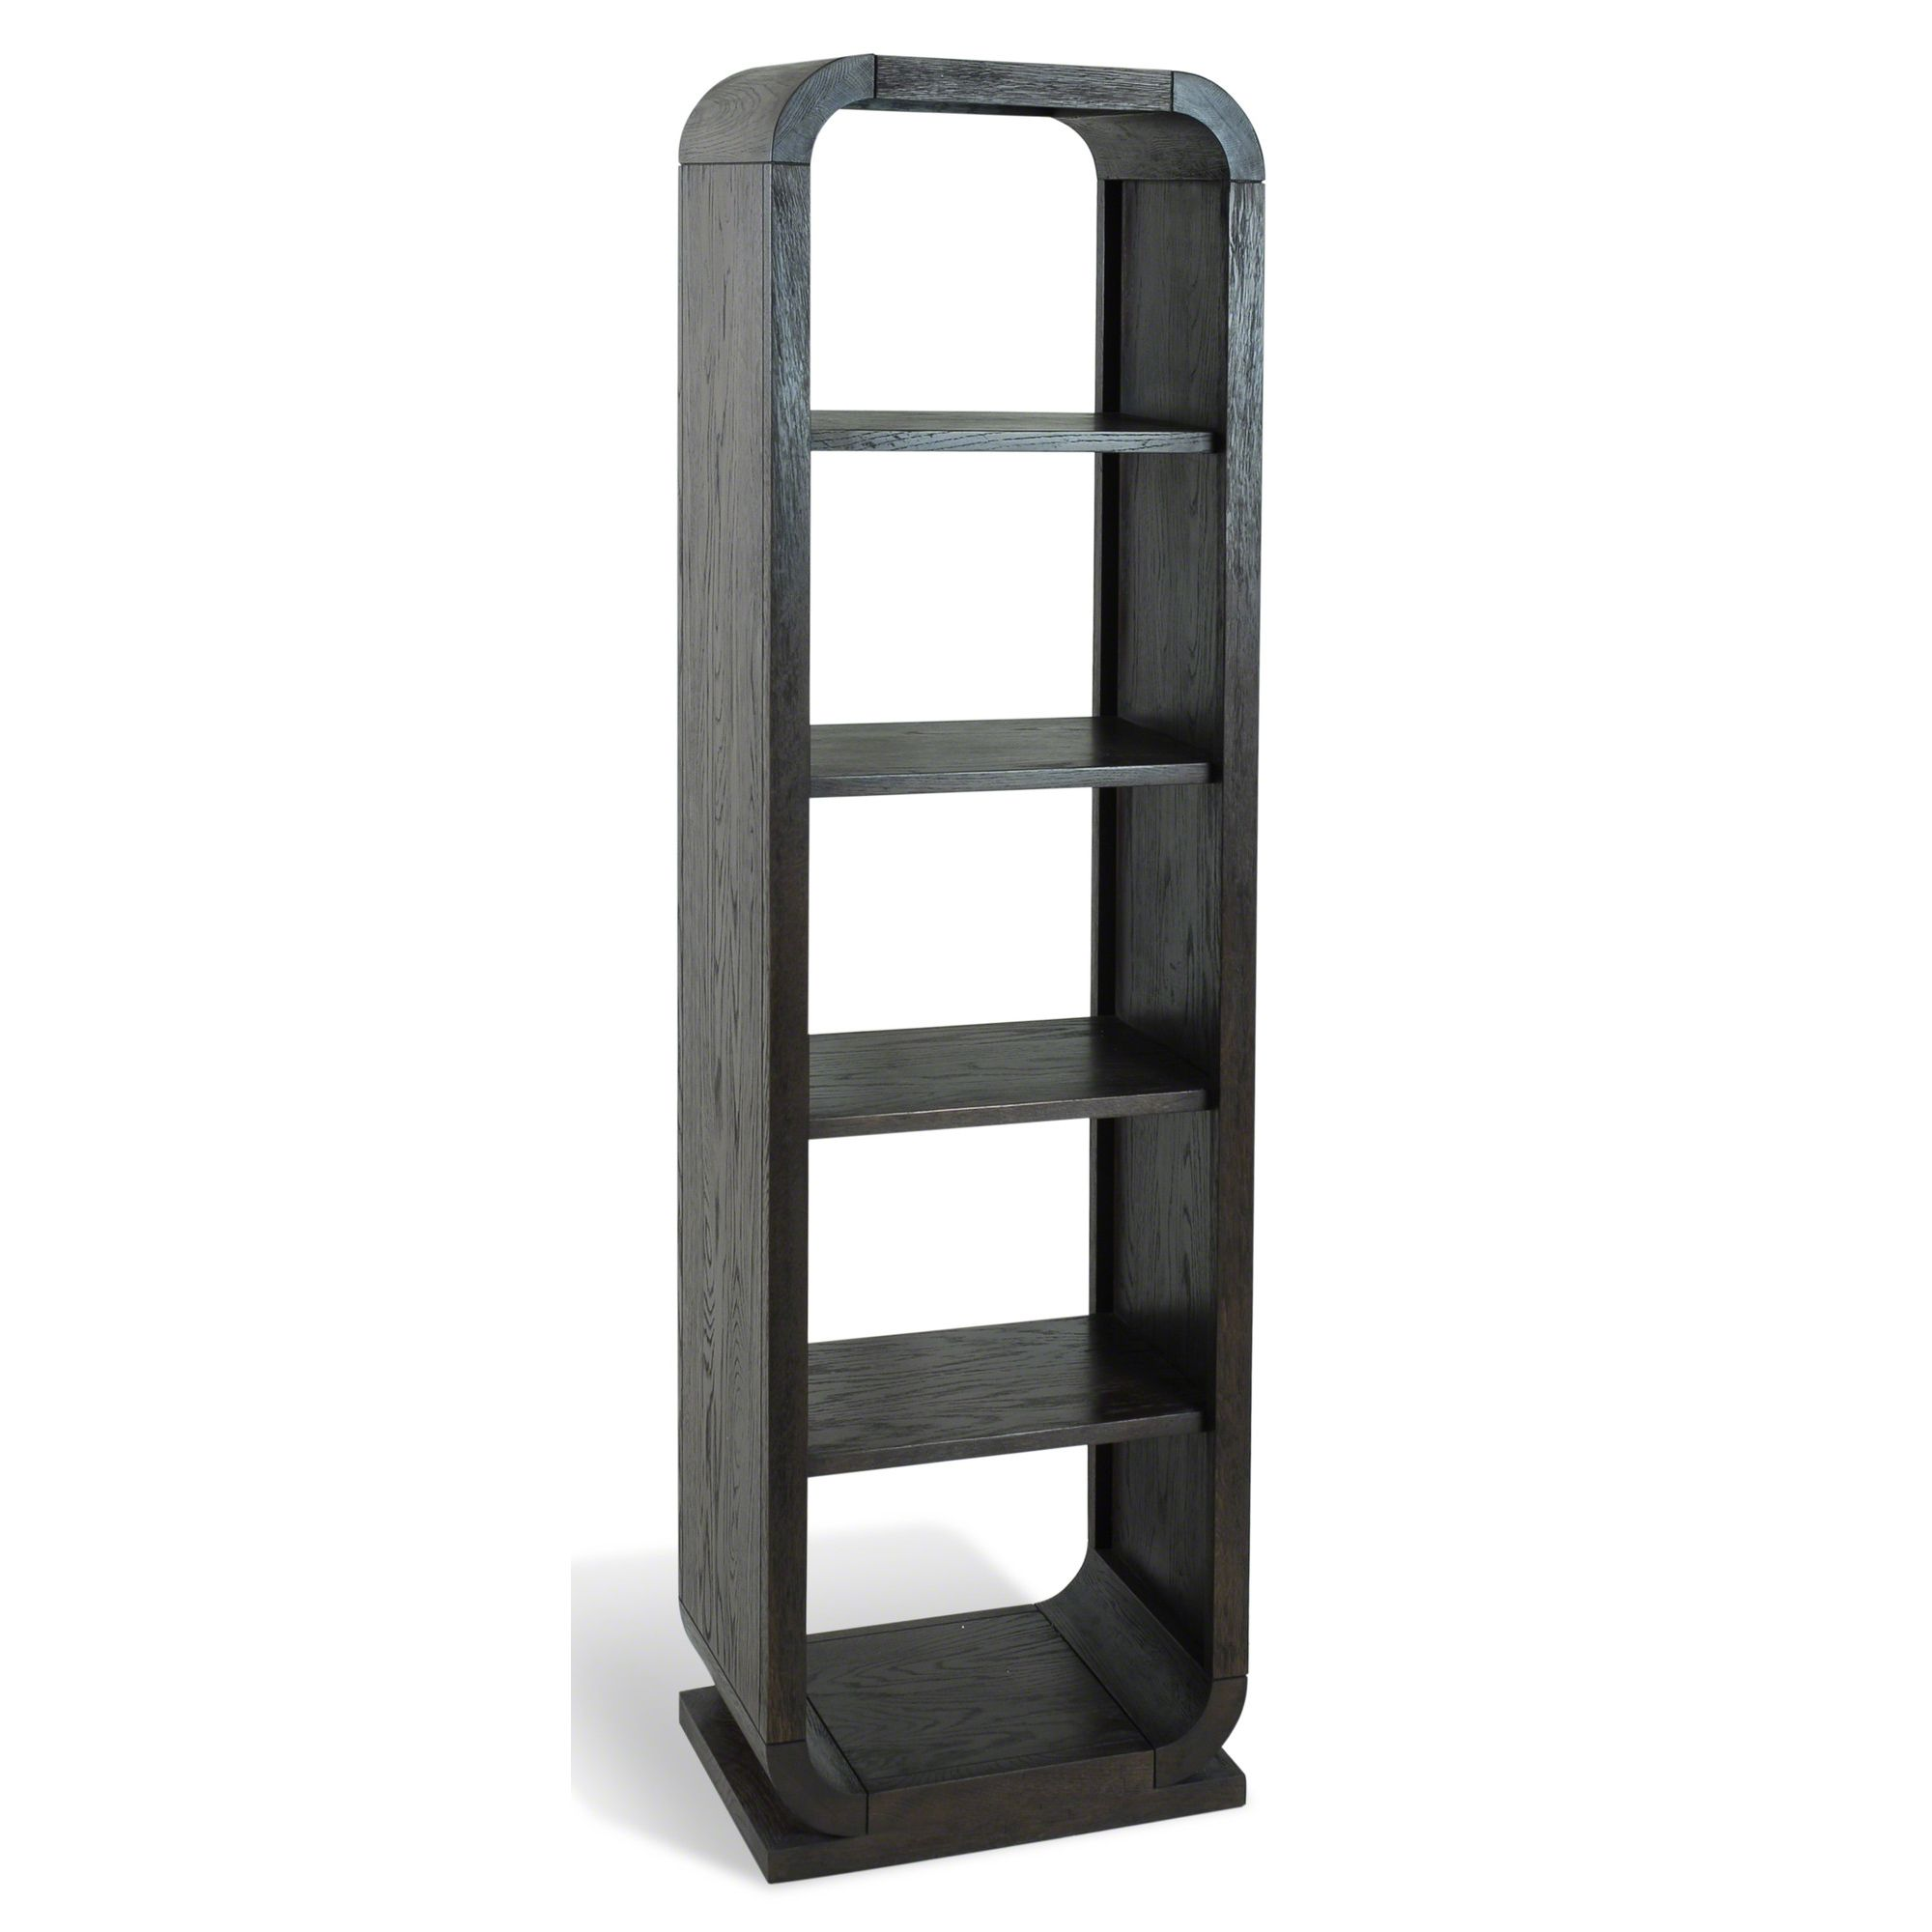 Oceans Apart Cadence Oak Open Back Four Shelves Unit - Dark Oak at Tesco Direct